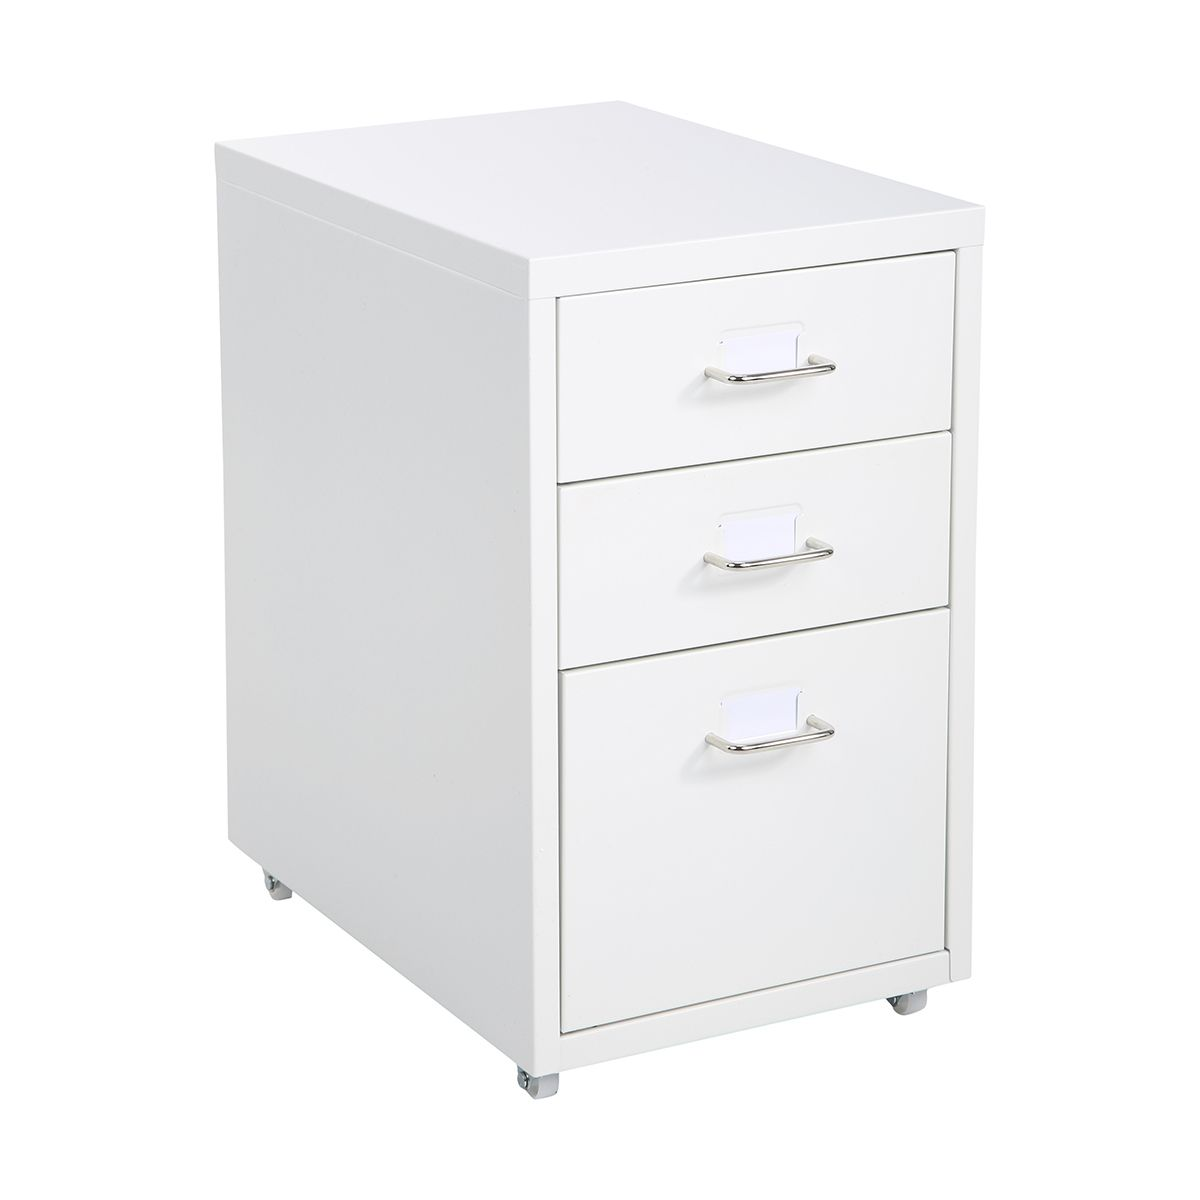 3 Desk Drawer White Kmart White Desk With File Cabinet Filing Cabinet File Cabinet Desk